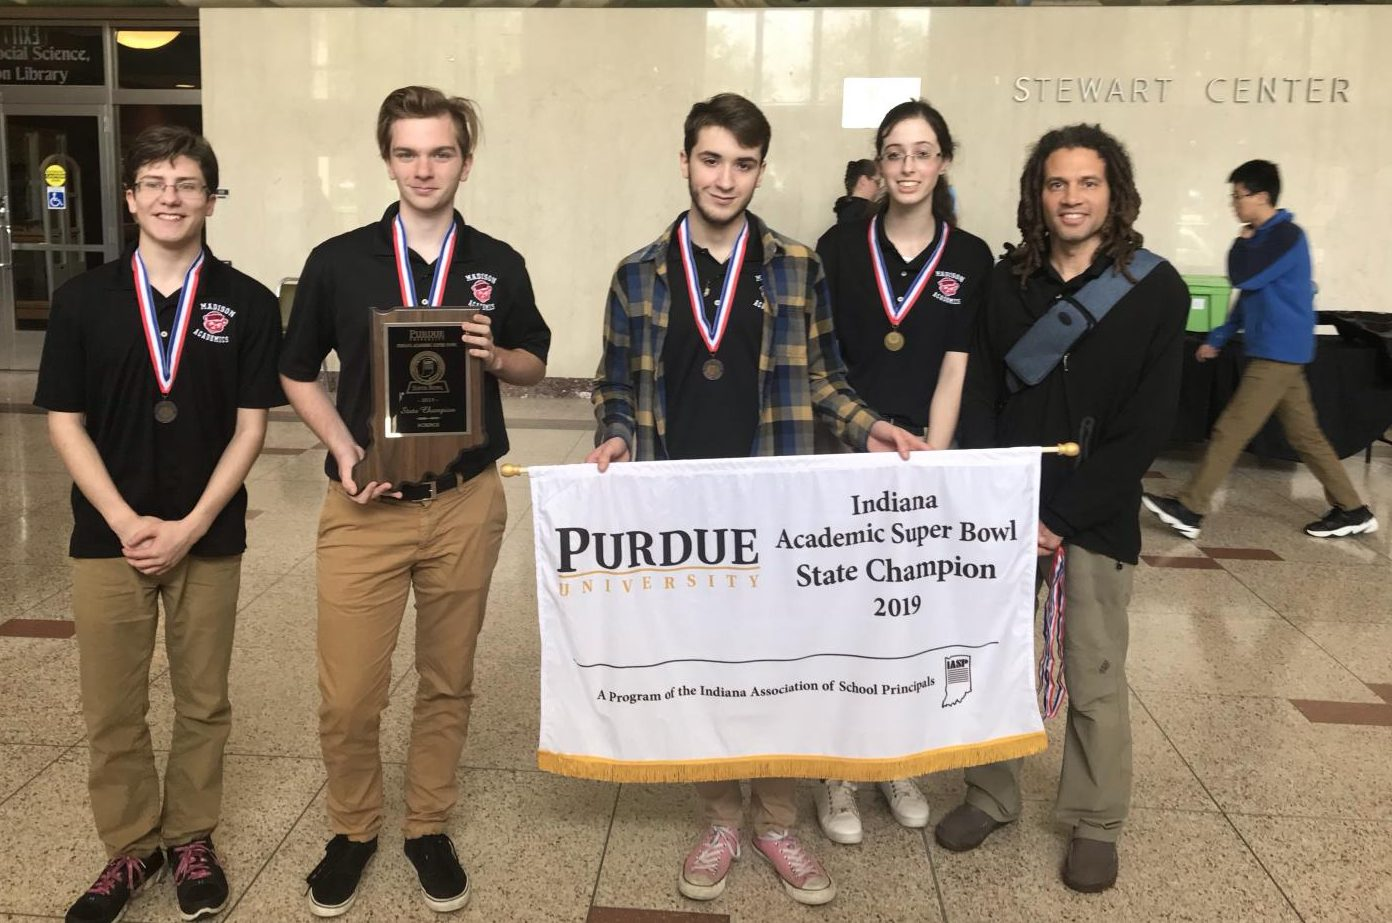 Members of the state champion academic Super Bowl team from left: Jalen Wilson, Haniah Kring, Ezra Young, Lydia Goebel, and Coach Emeka Koren